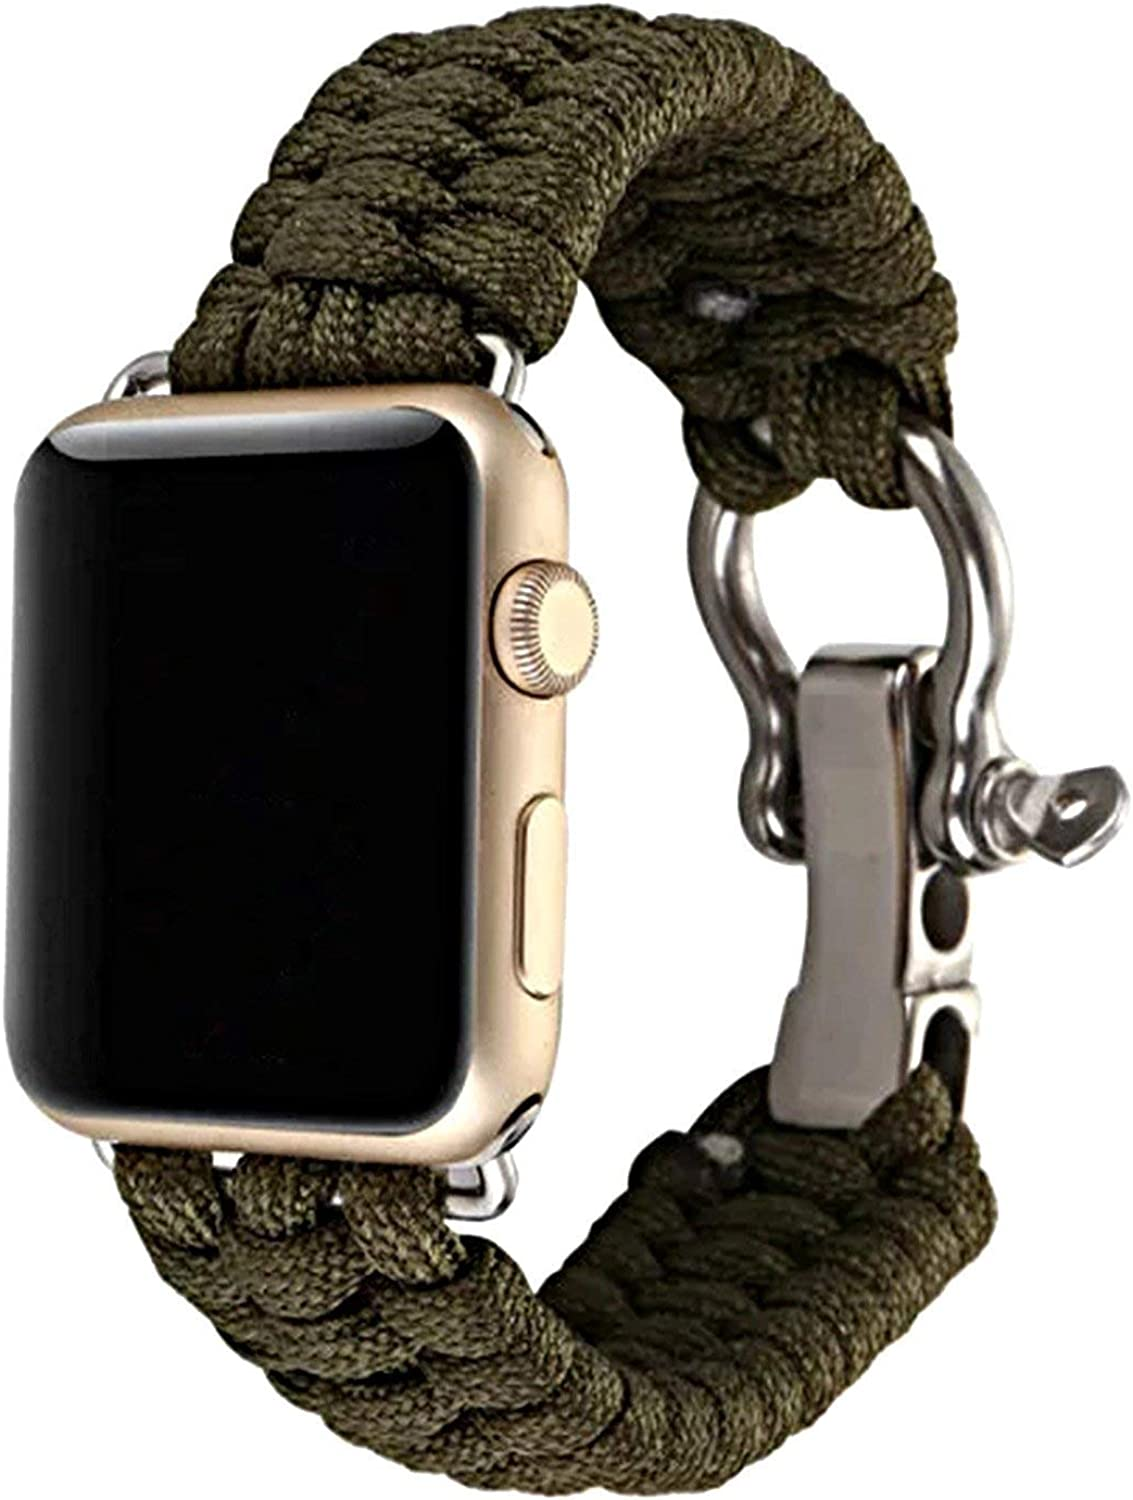 XUANTAI Apple Watch Band 38mm Paracord Series 4 Replacement Sports with Adjustable Size Outdoor Survival Stainless Steel Shackle (Olive Color)